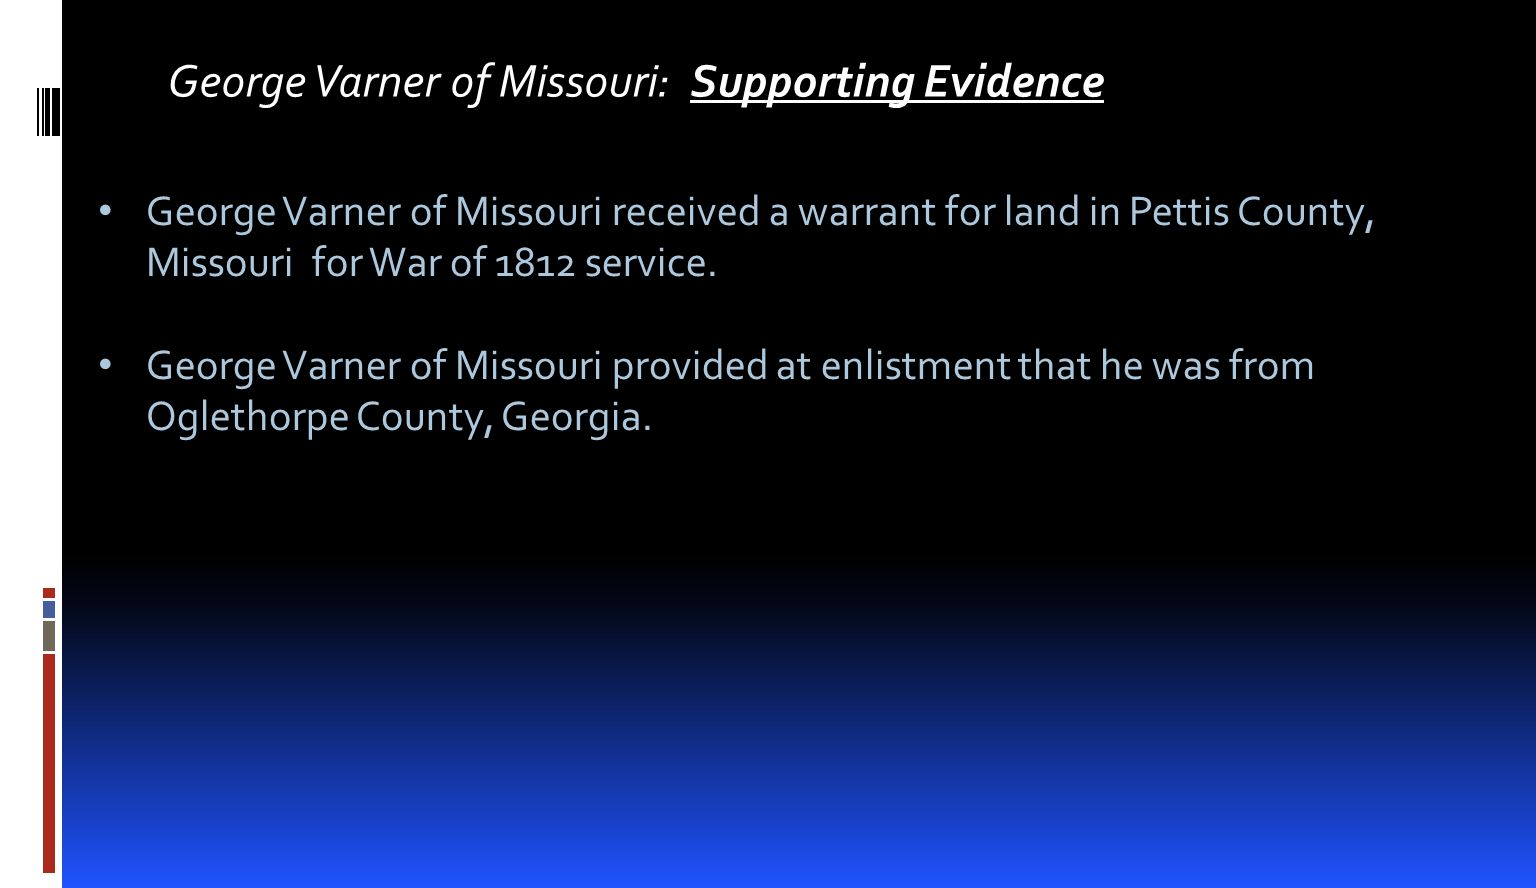 George Varner of Missouri: Supporting Evidence